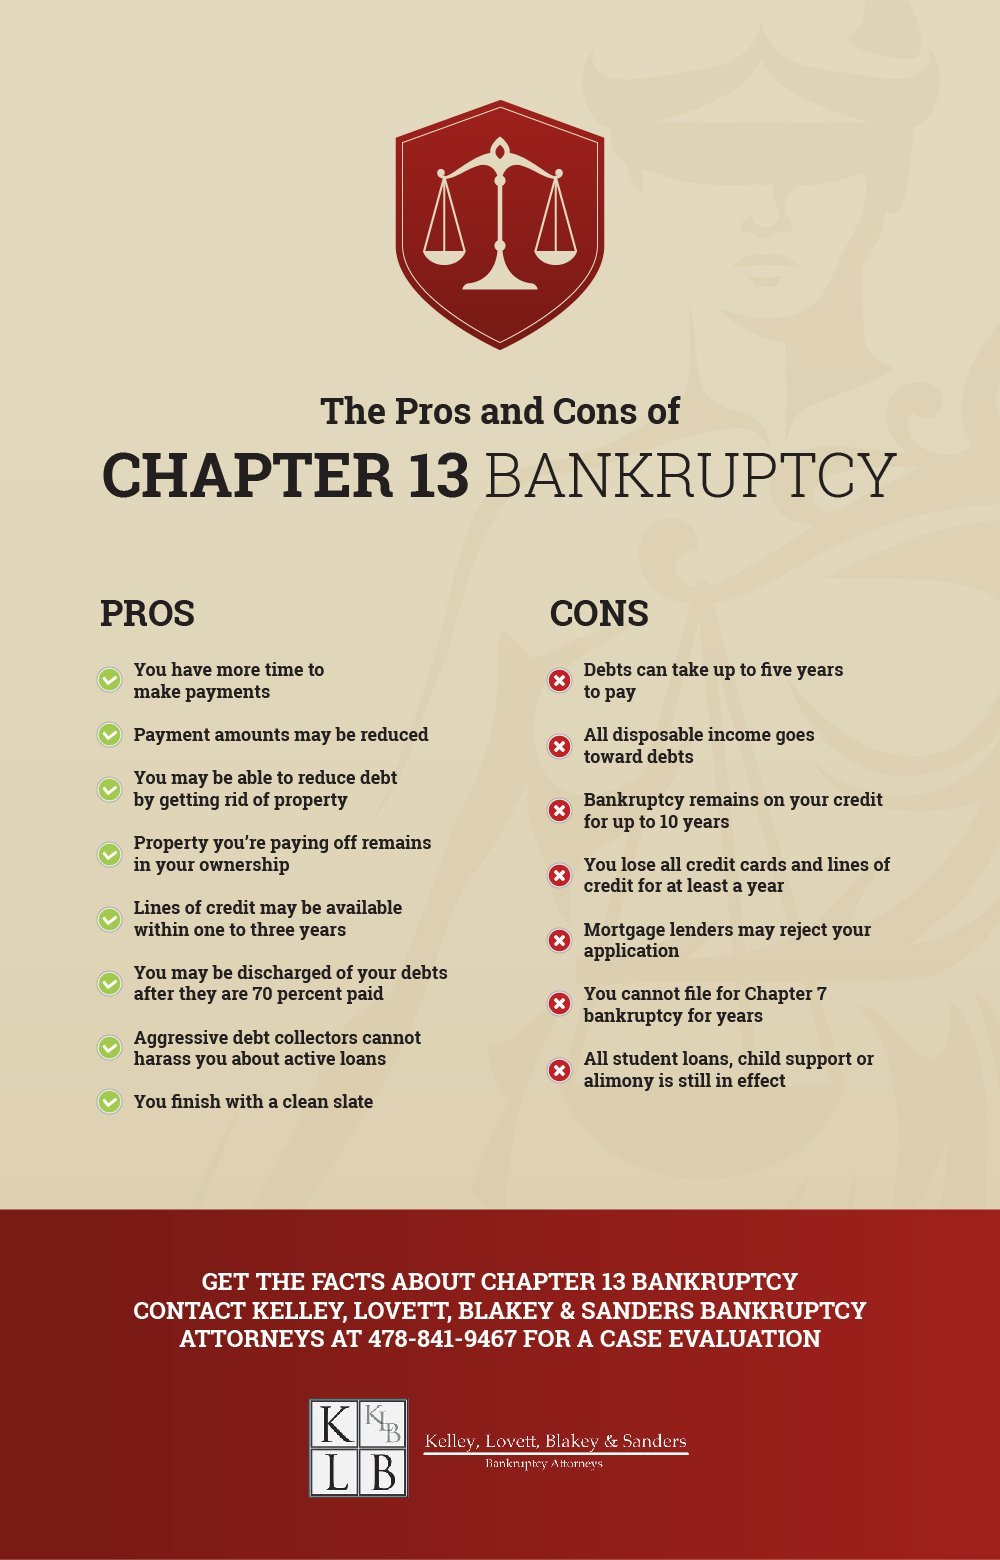 what you can lose when filing for bankruptcy in georgia